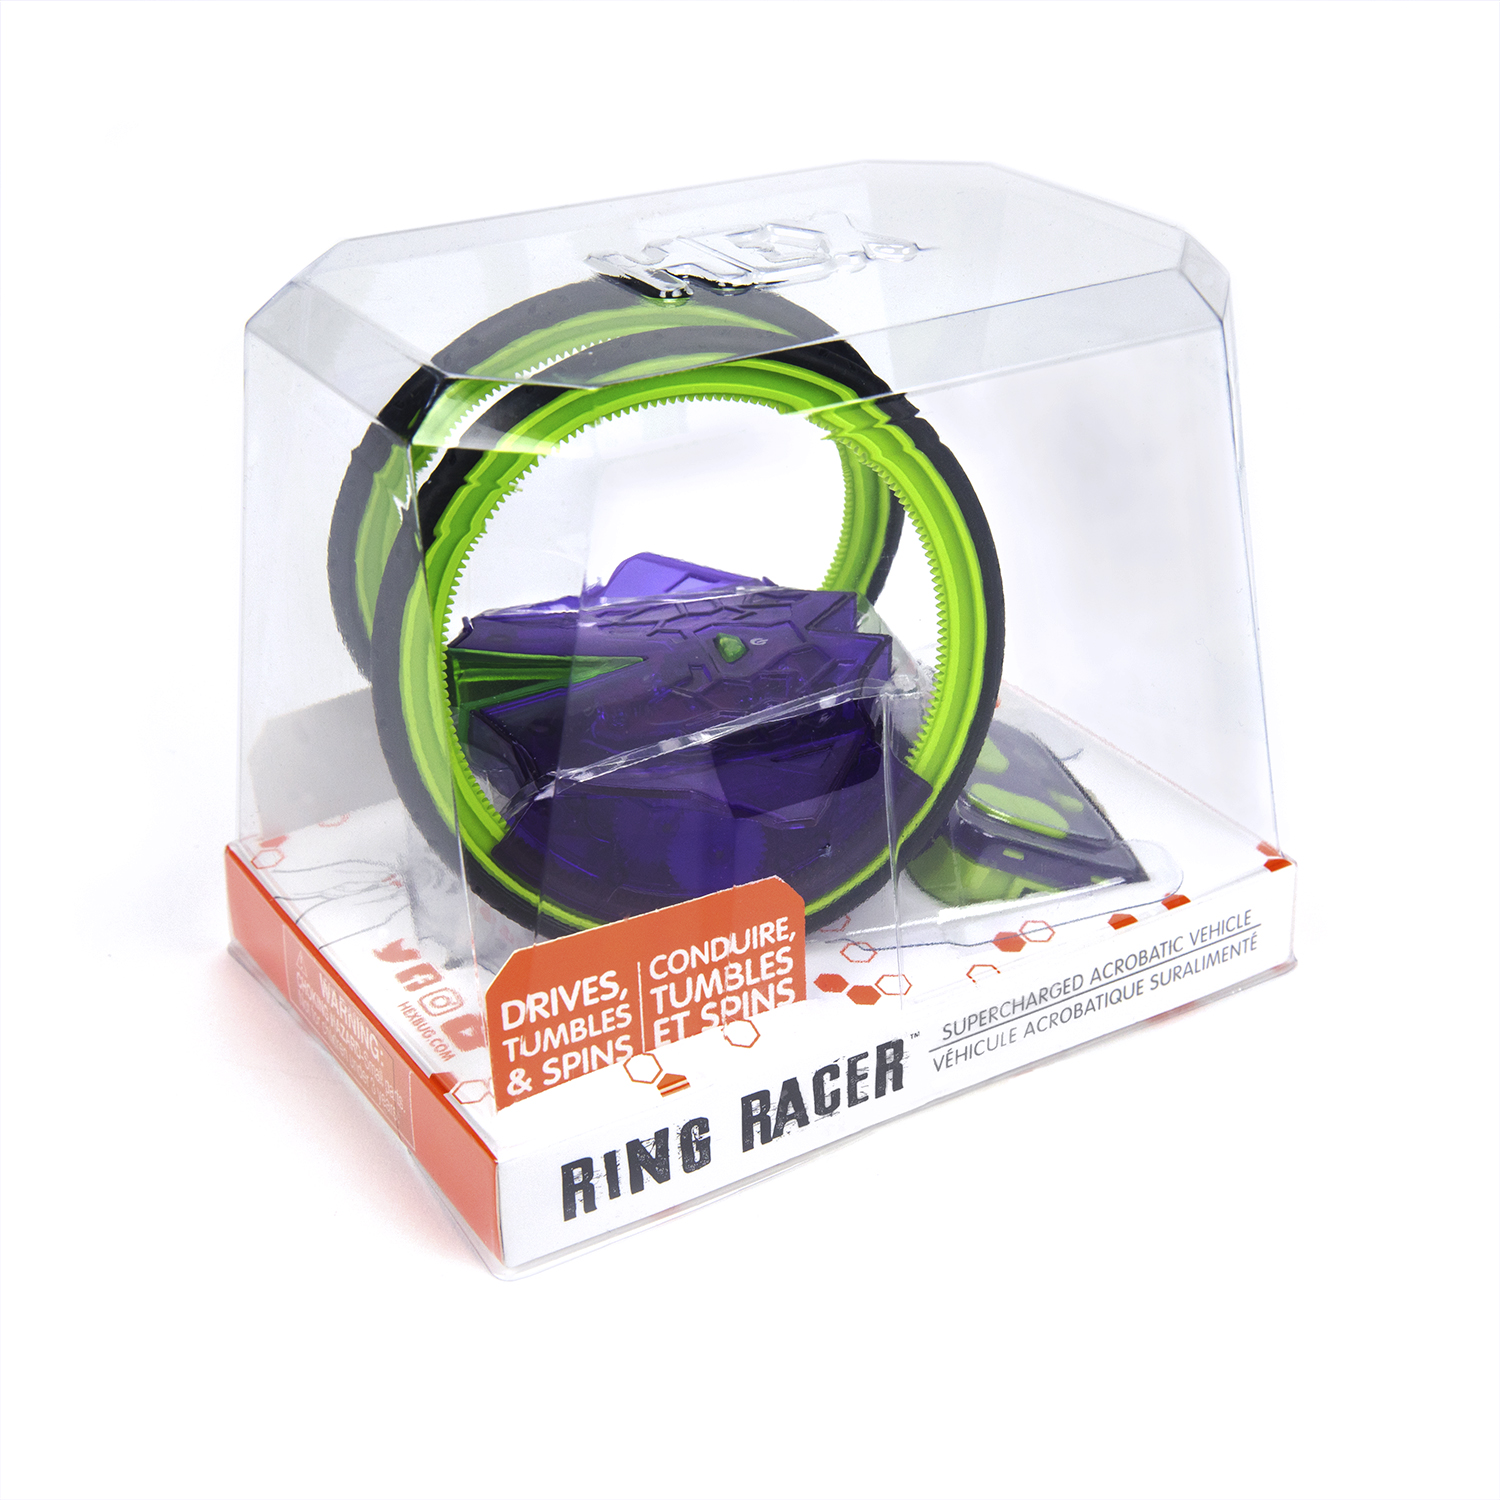 Get your FREE HEXBUG Ring Racer!